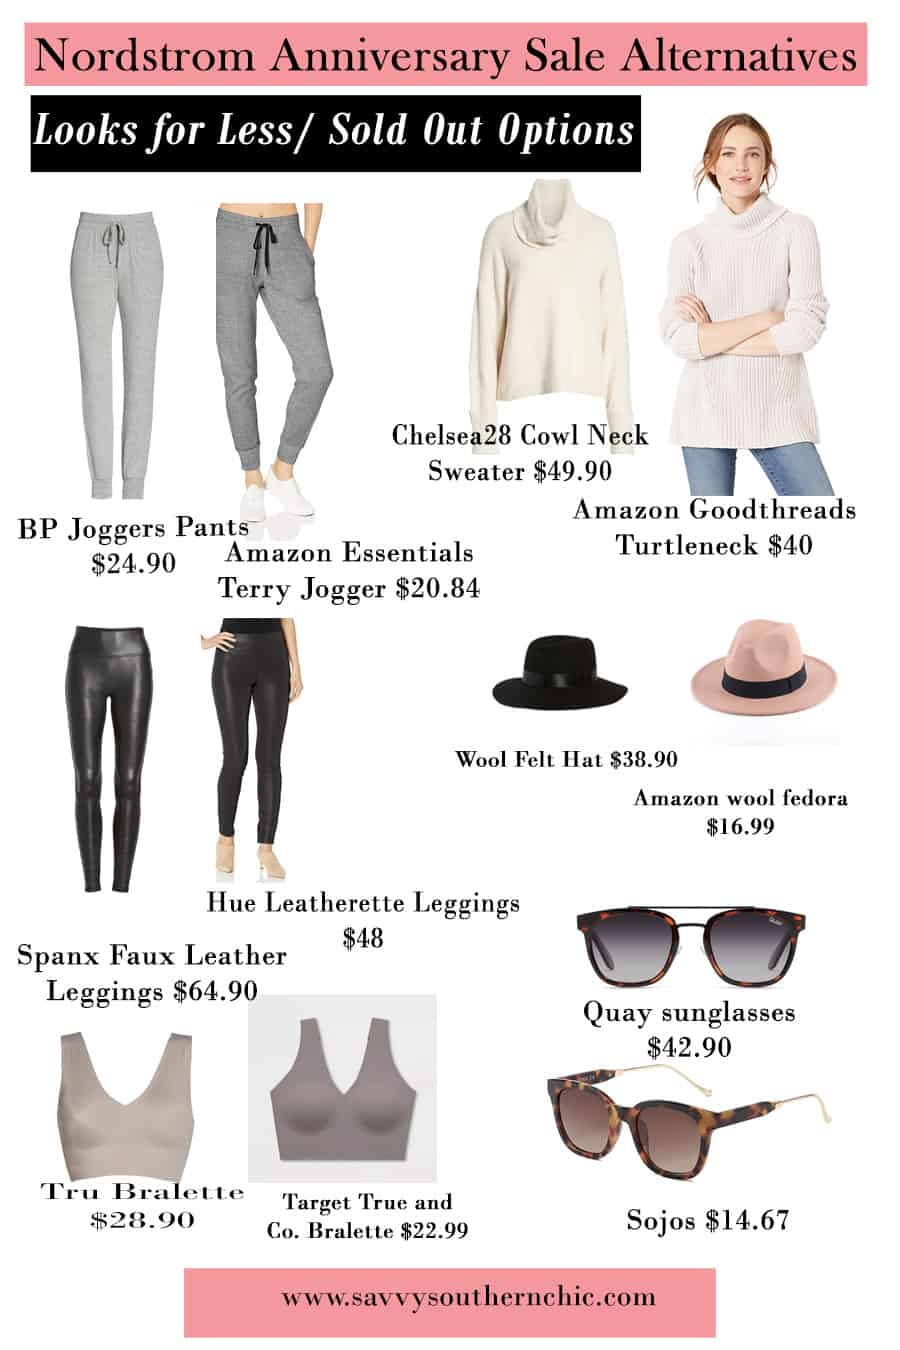 alternatives to the Nordstrom Anniversary Sale items